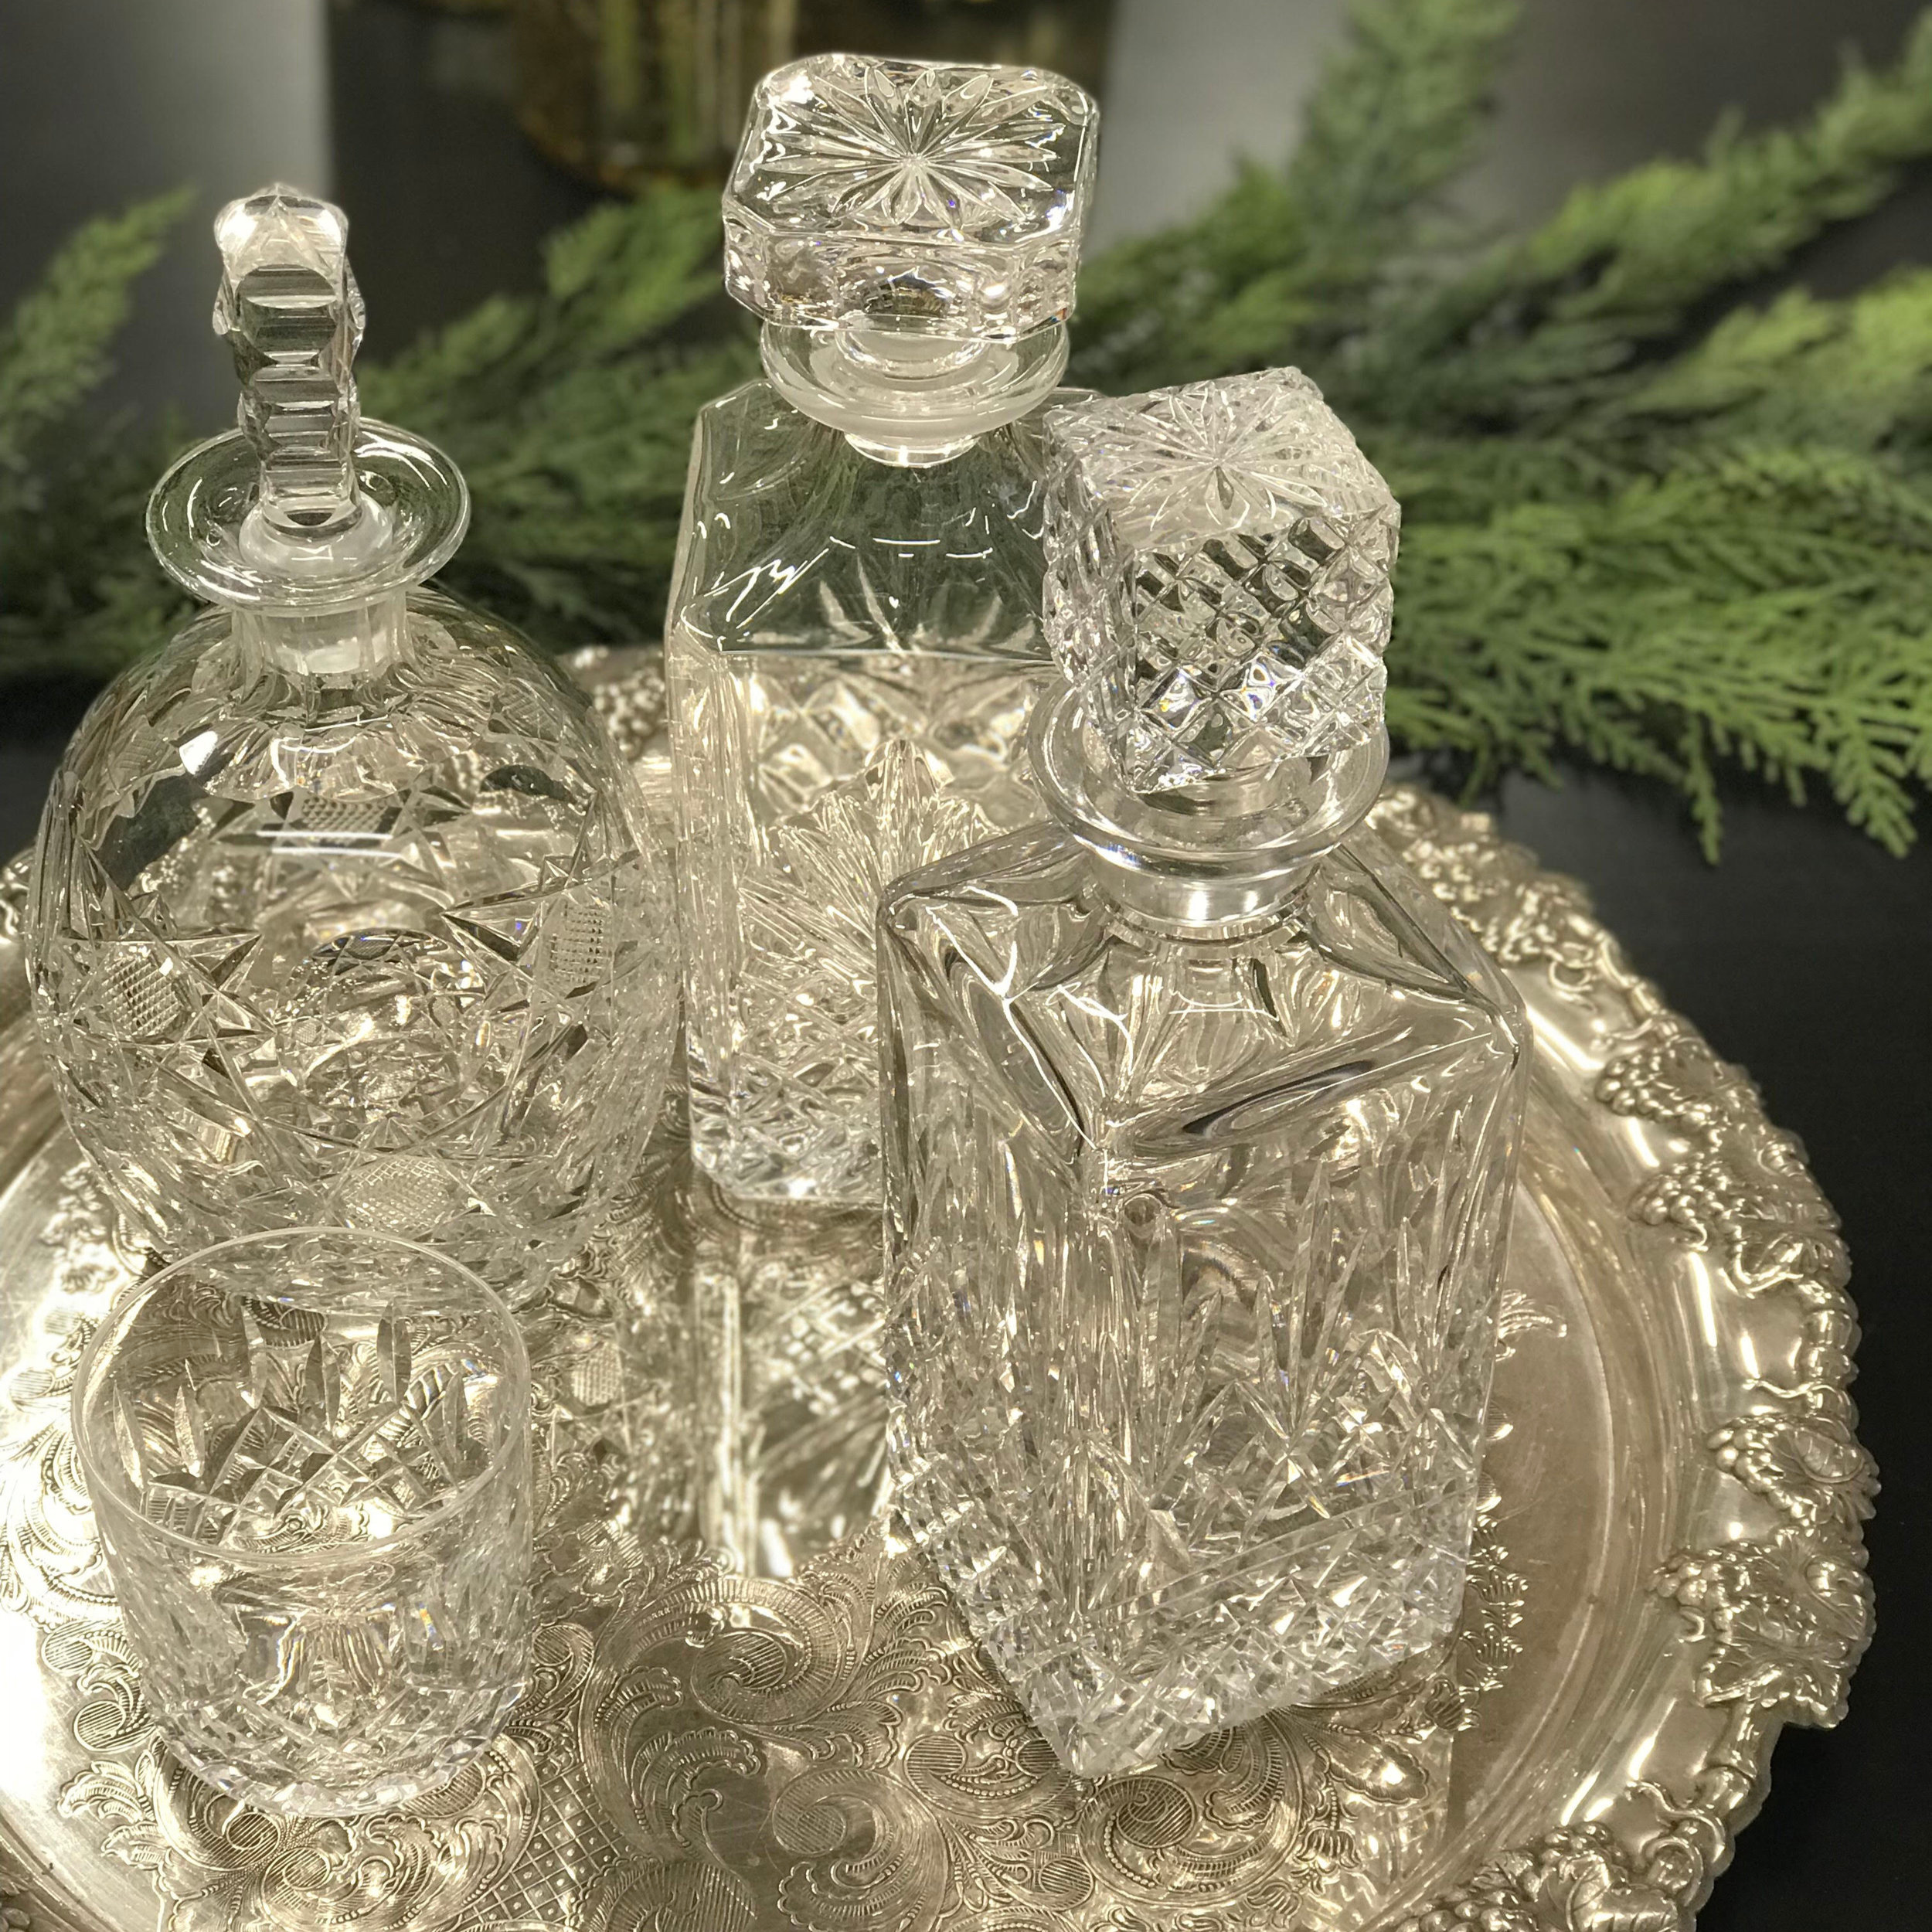 Assorted Crystal Decanters I $10.00 each I Qty 6